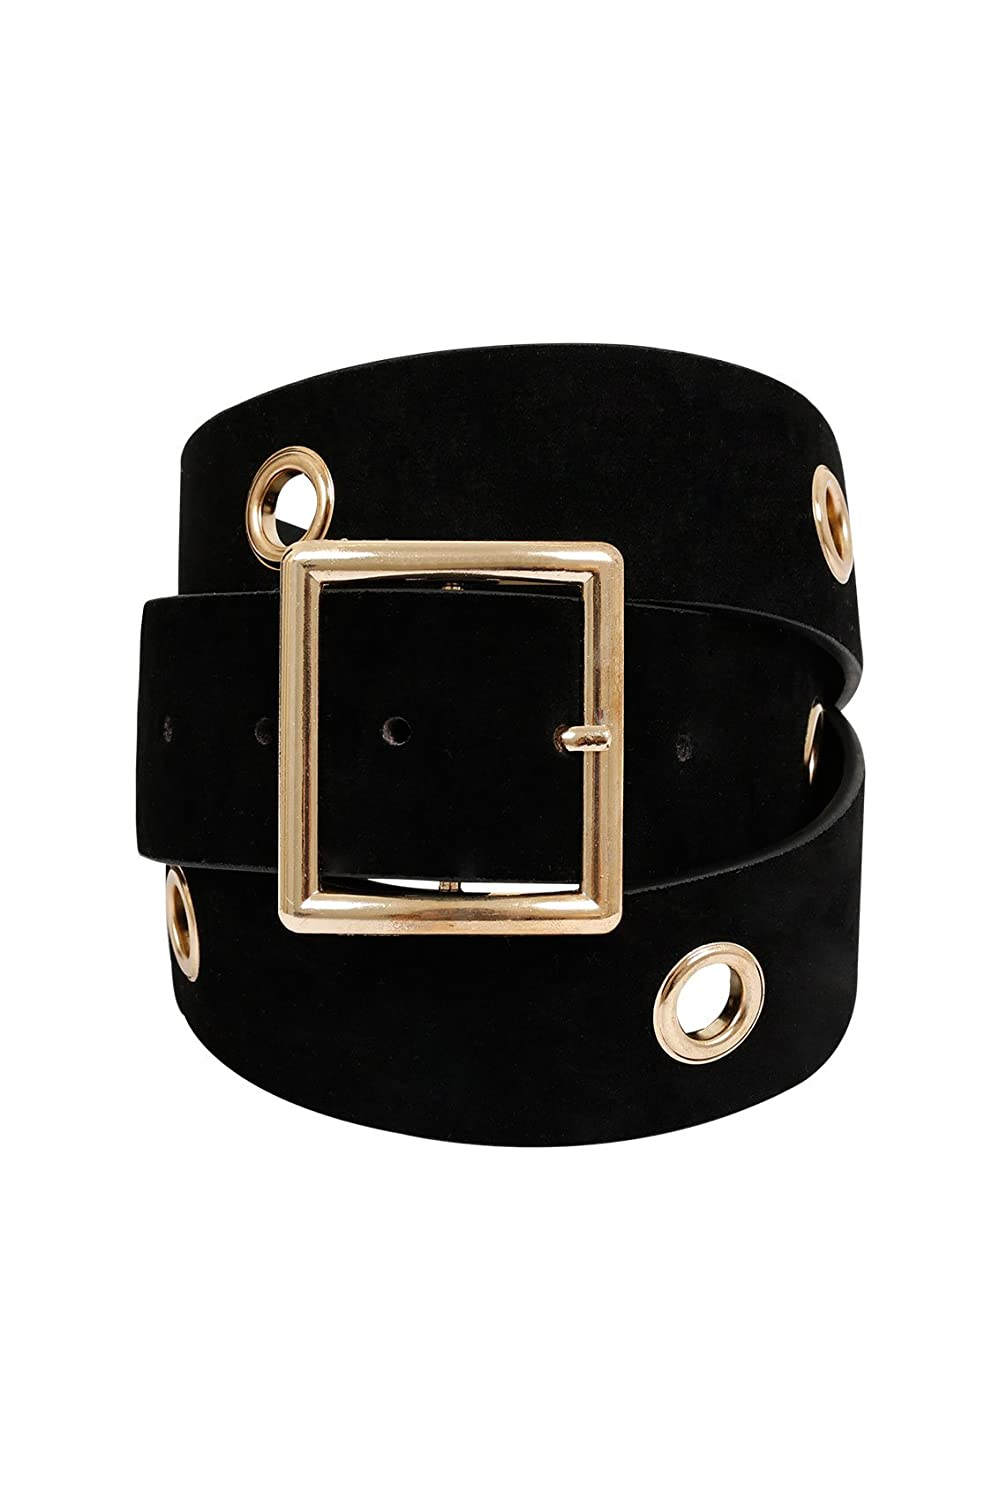 Yoursclothing Womens Suedette Belt With Gold Eyelet Detail